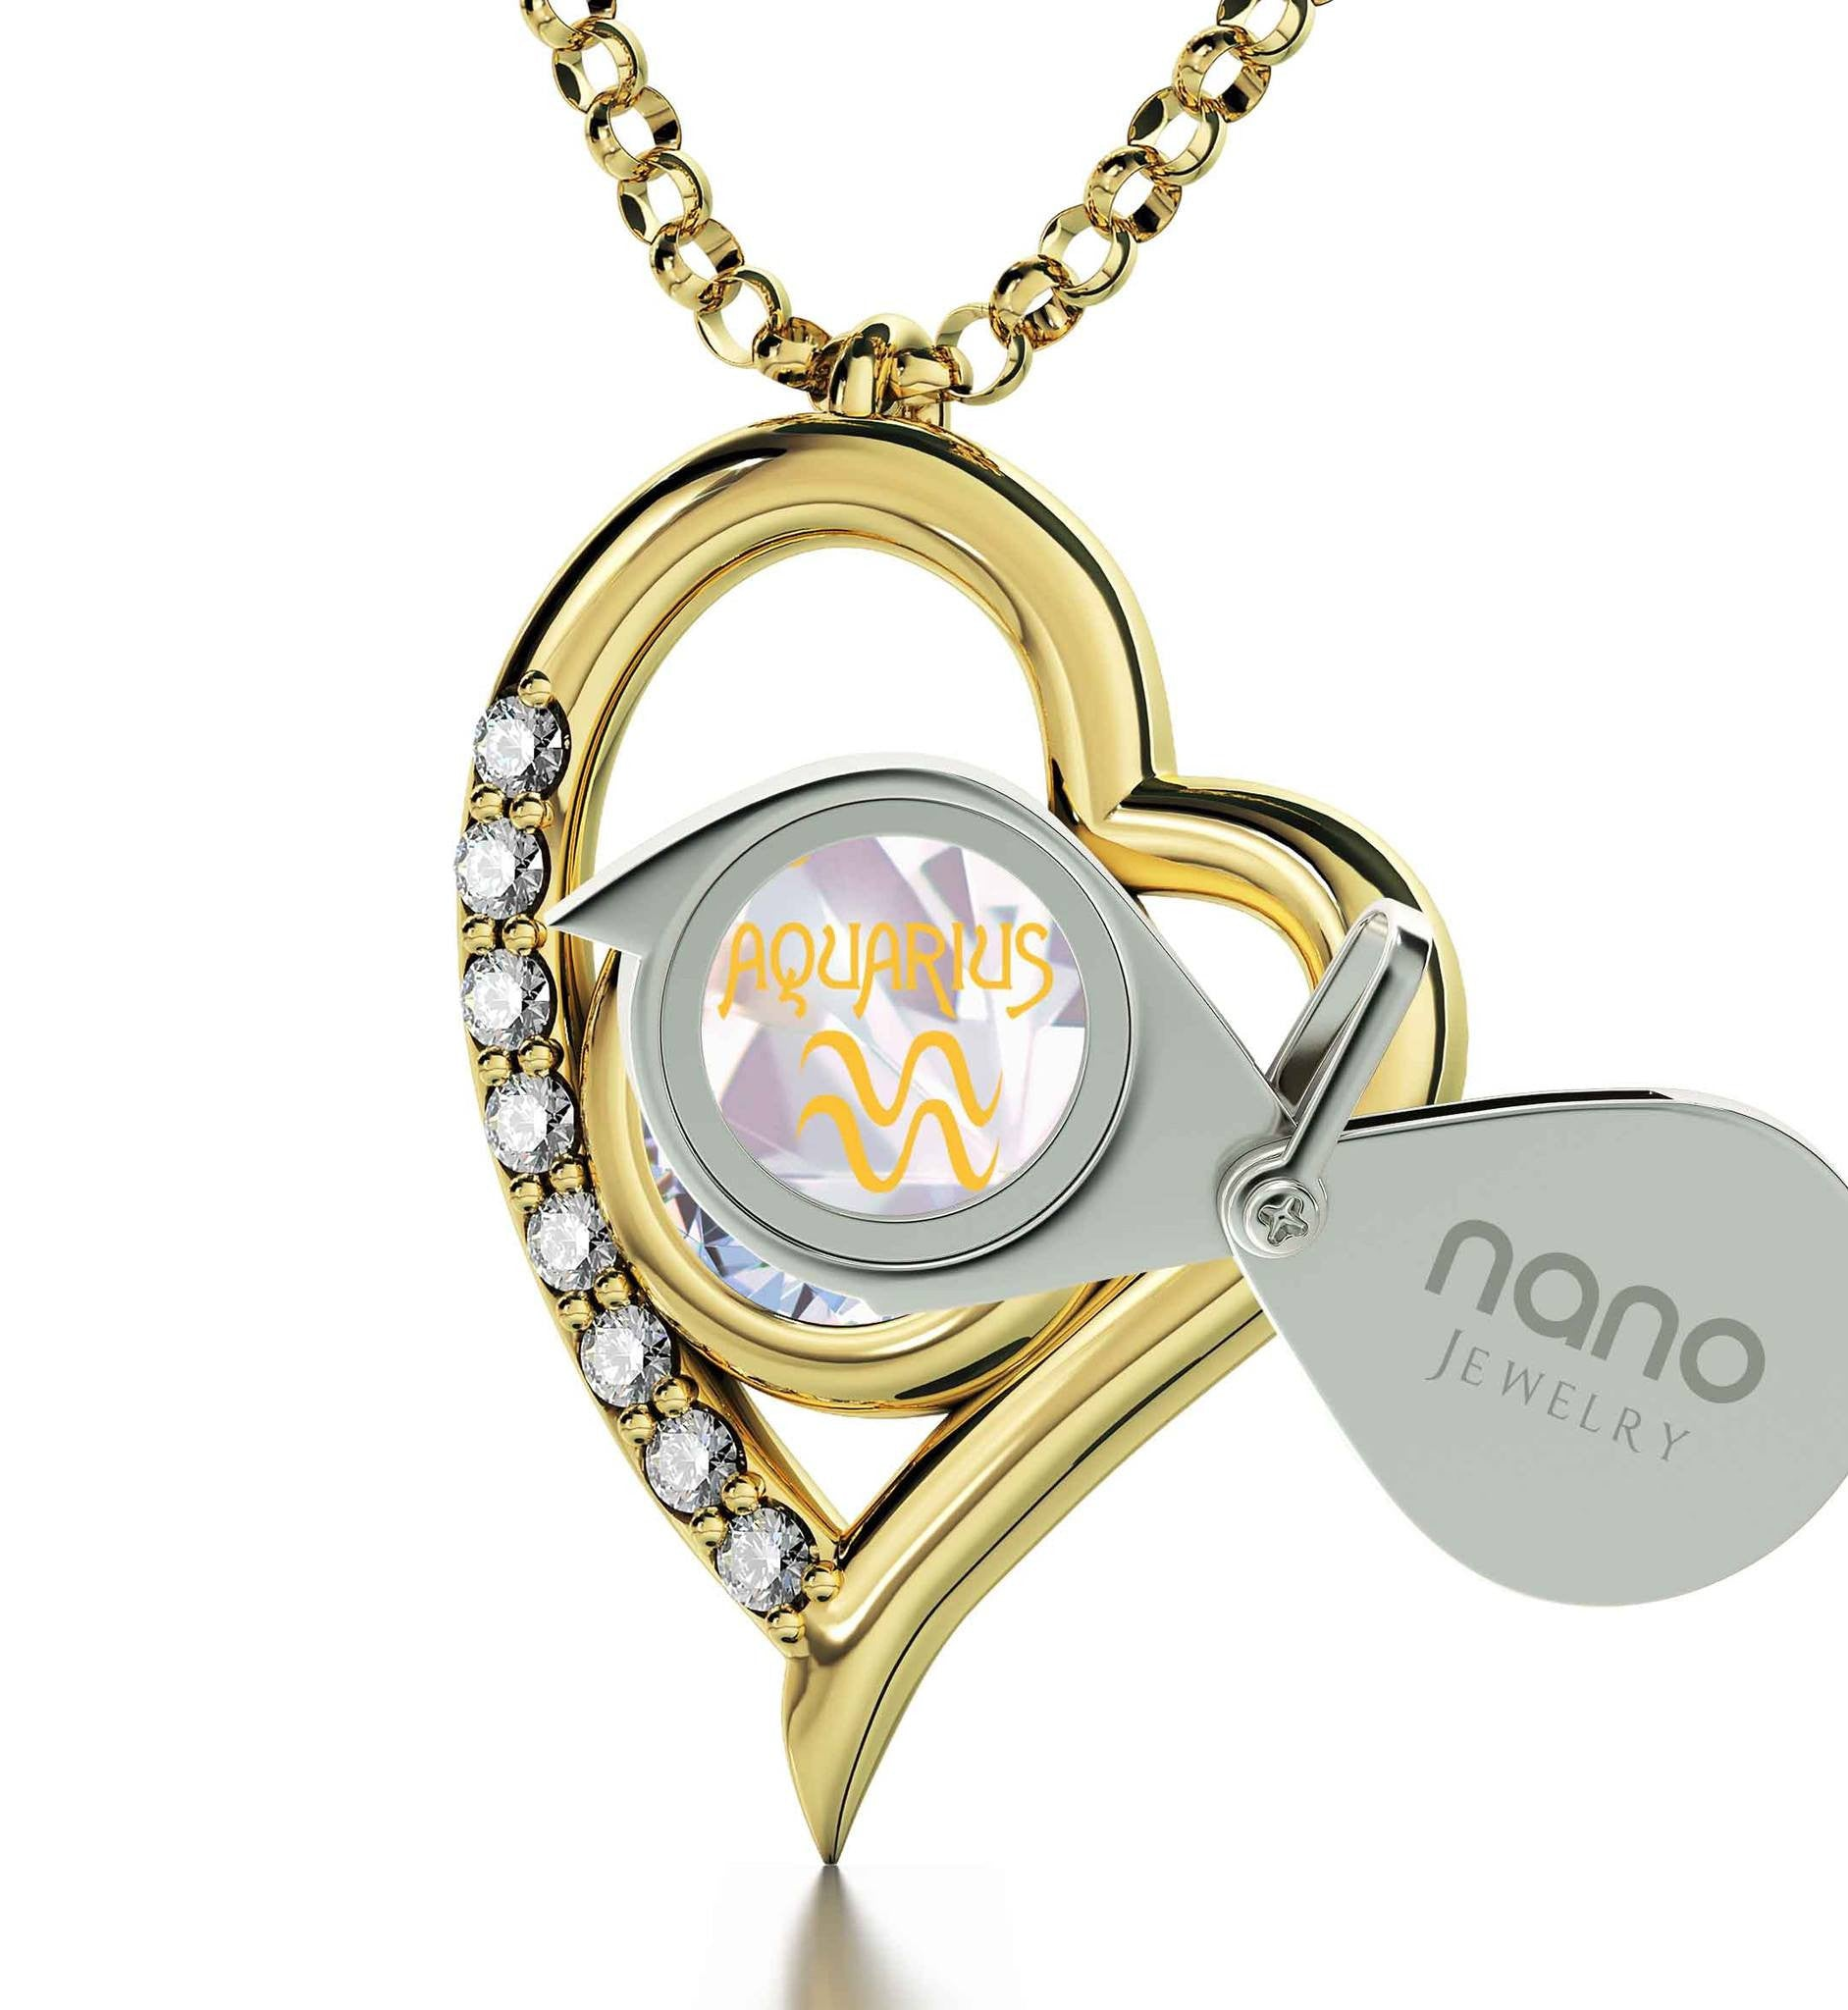 """Aquarius Jewelry With Zodiac Imprint, Top Womens Gifts, What to Get Your Best Friend for Her Birthday, Swarovski Necklace """